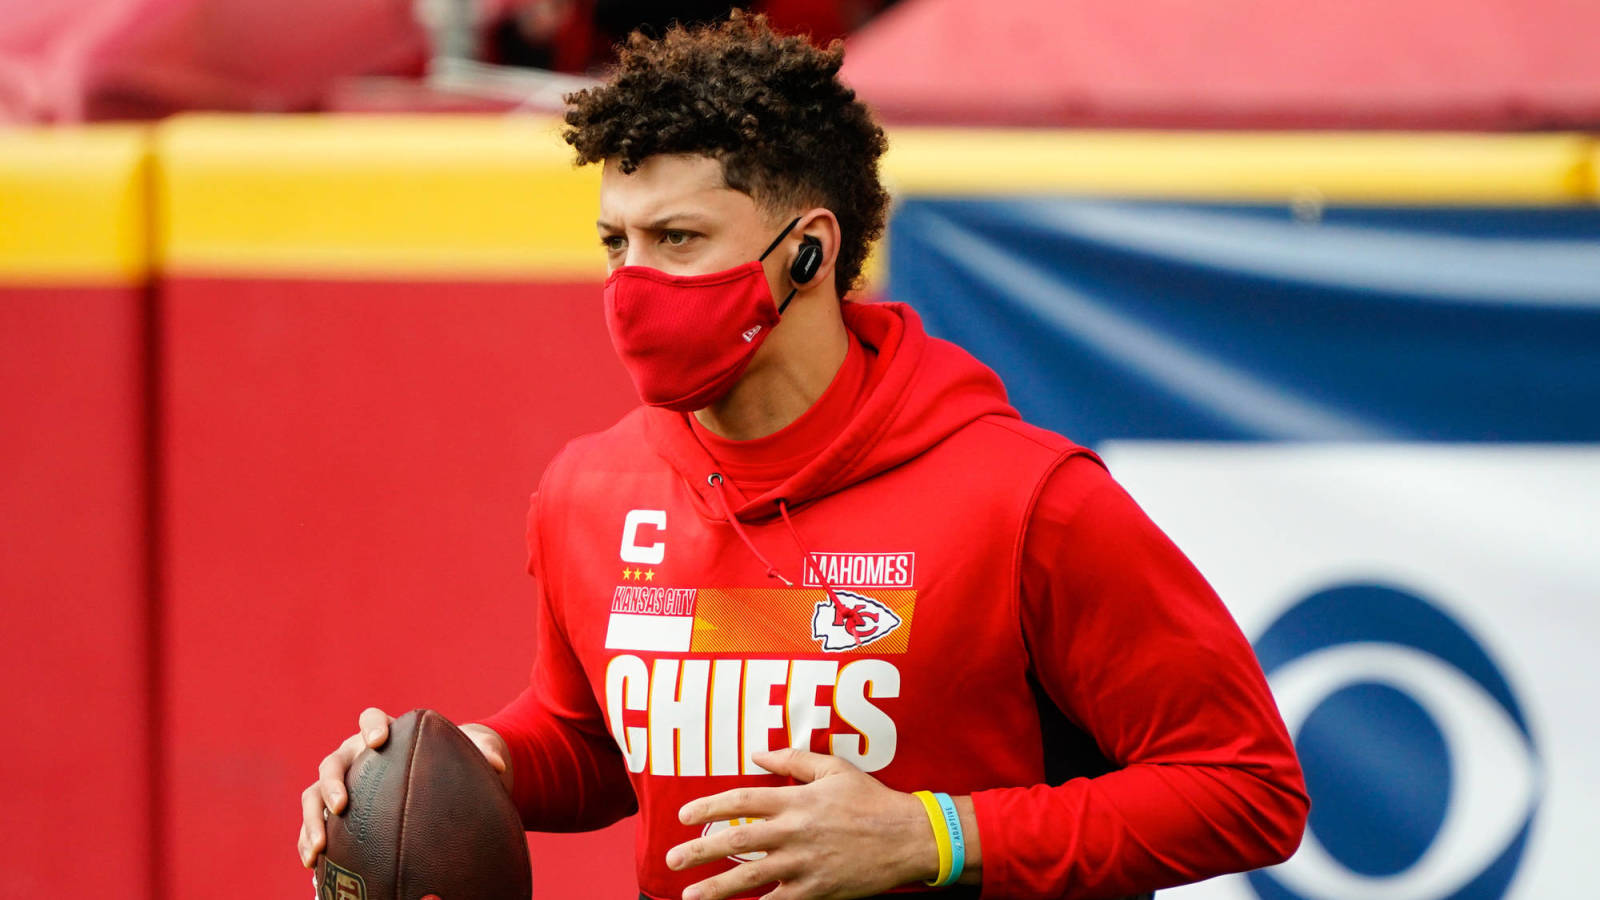 Report: Chiefs QB Patrick Mahomes not 100%, suffering from turf toe